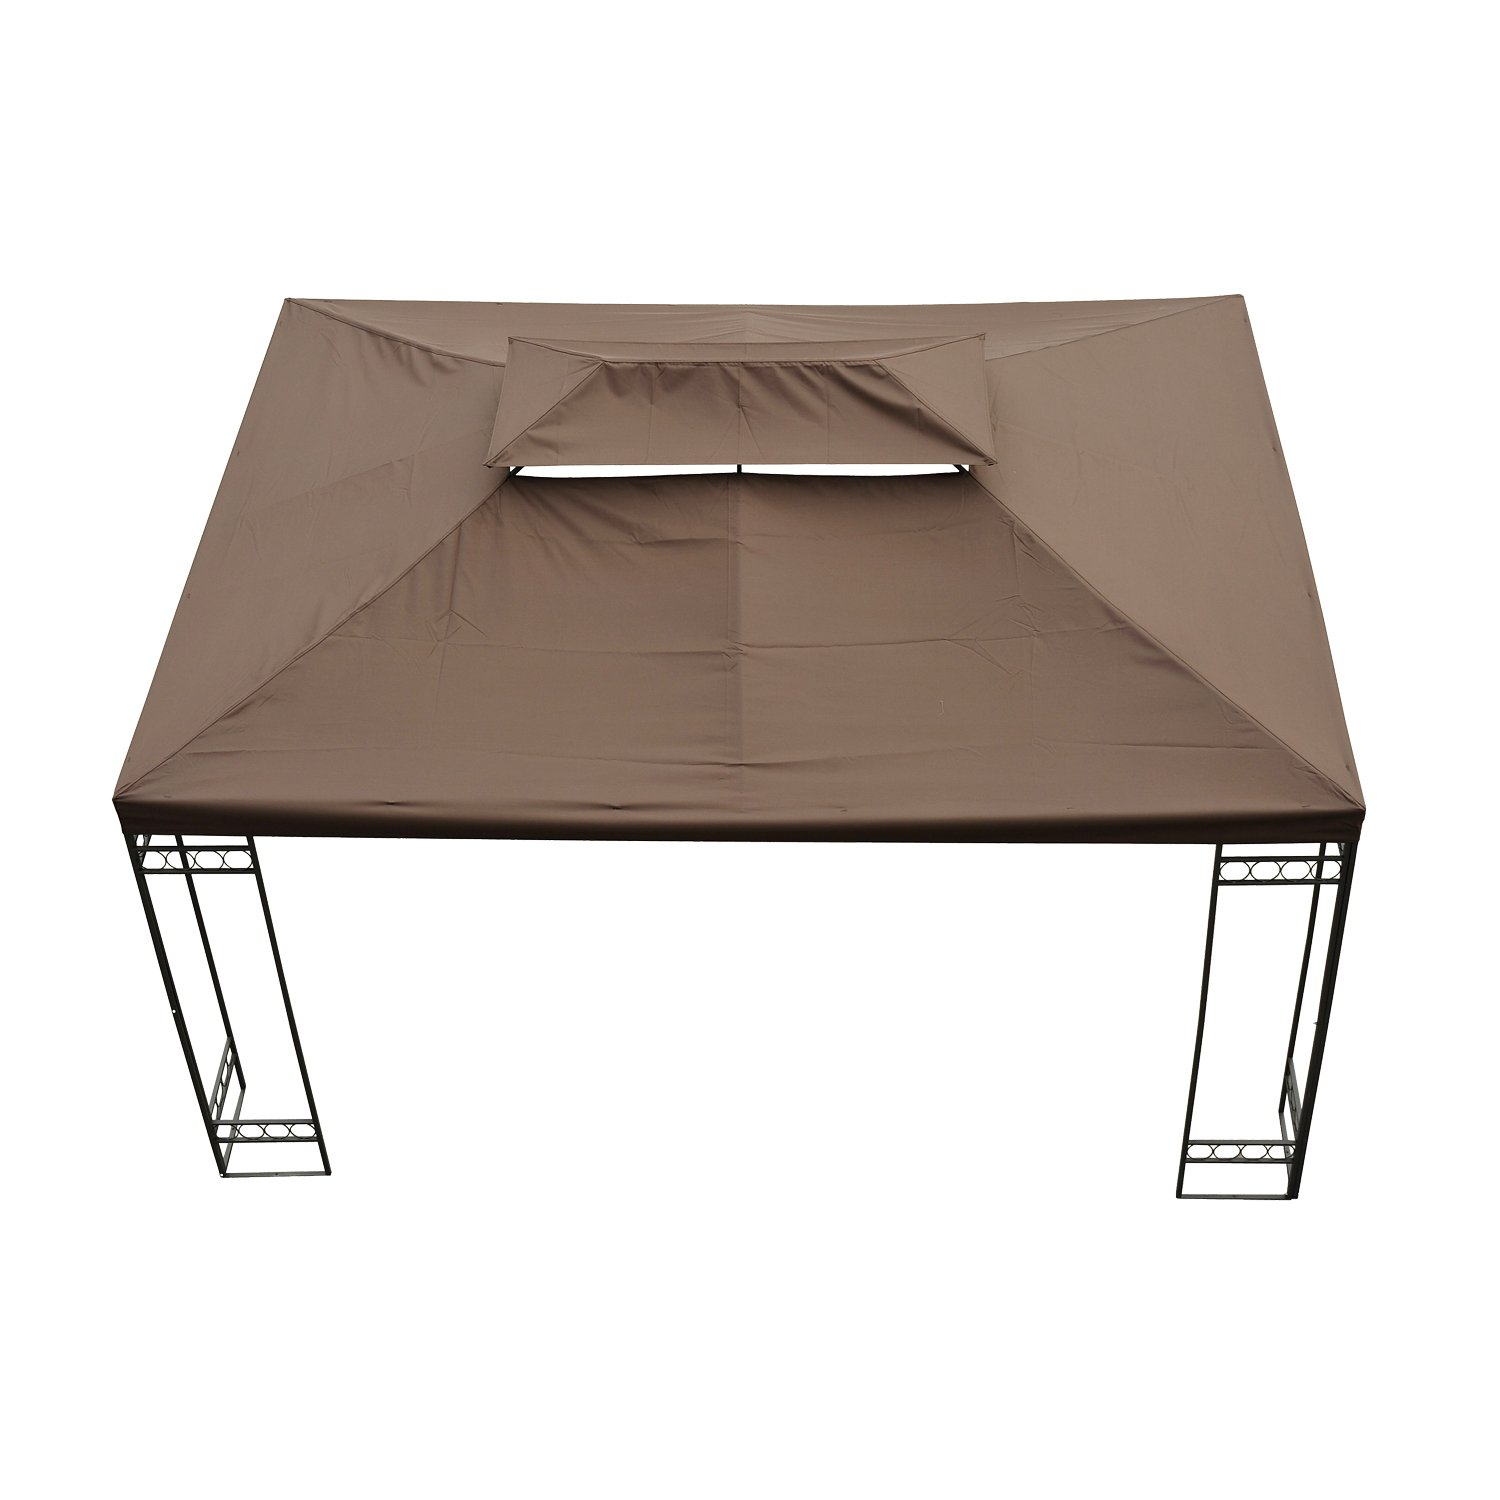 Outsunny 3 X 4m Gazebo Canopy Roof Top Replacement Pavilion Tent Spare Part 2 Tier Brown Amazoncouk Garden Outdoors